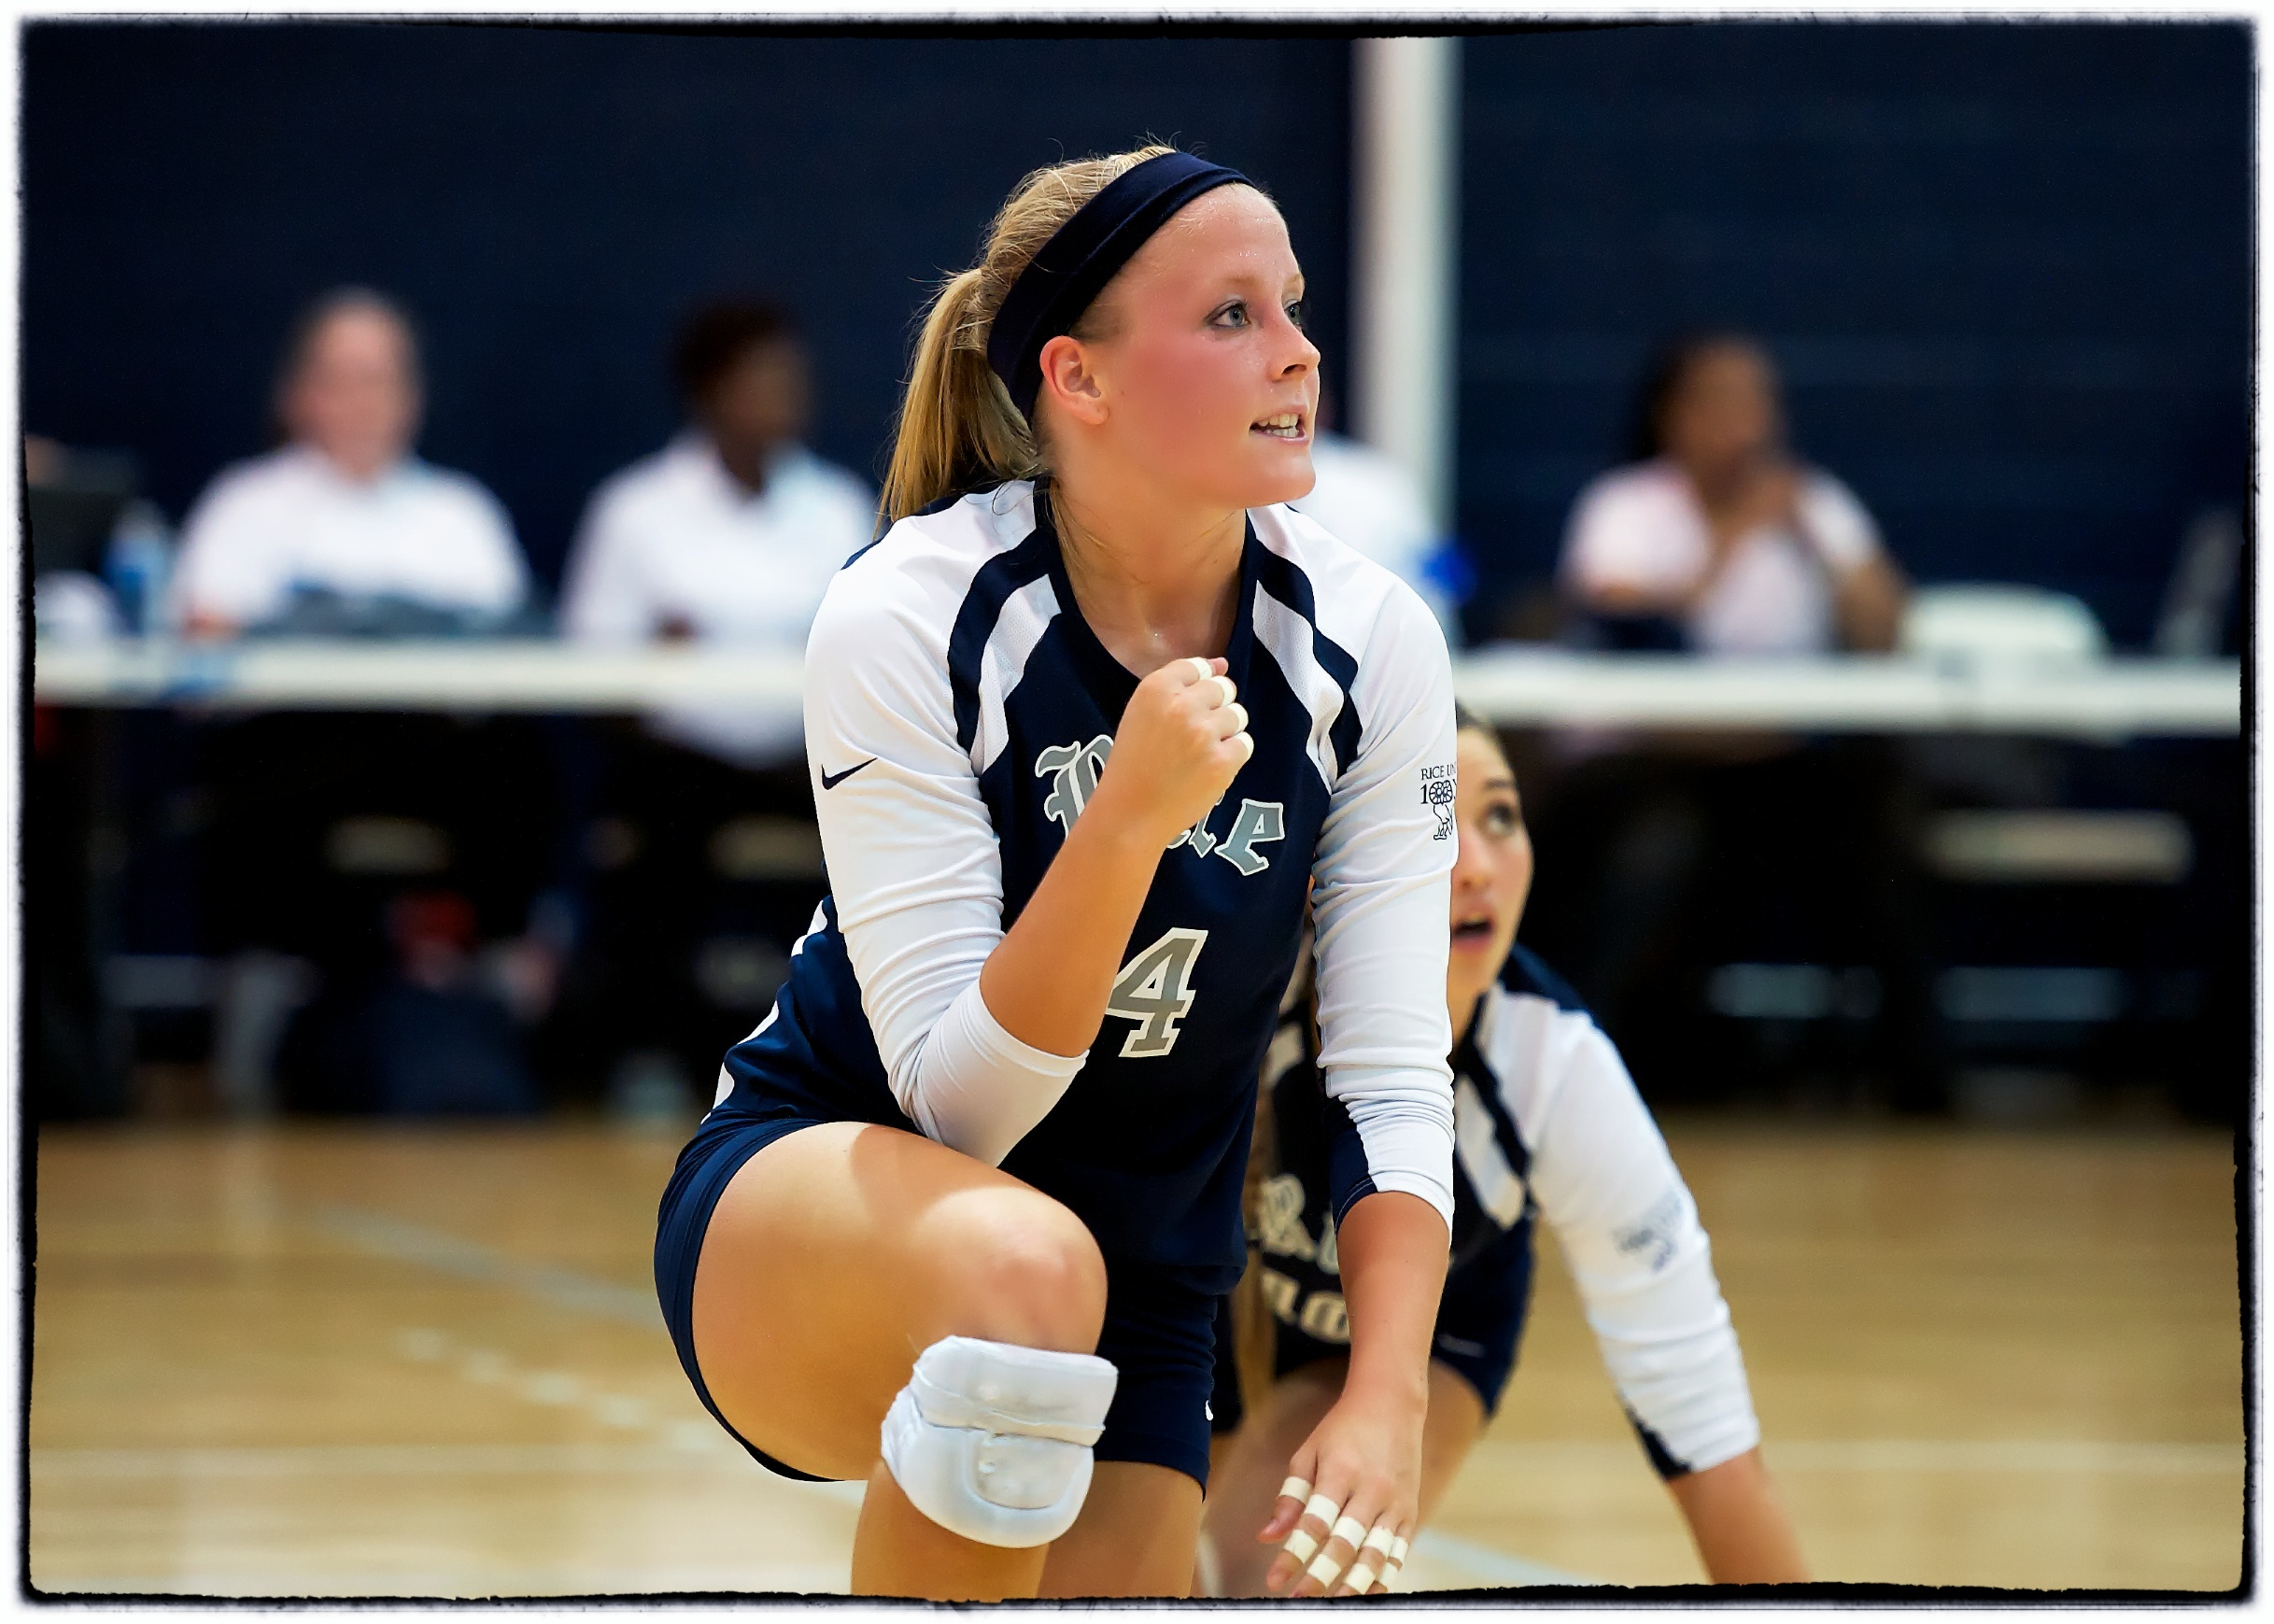 Megan Murphy had 114 assists in the tournament.